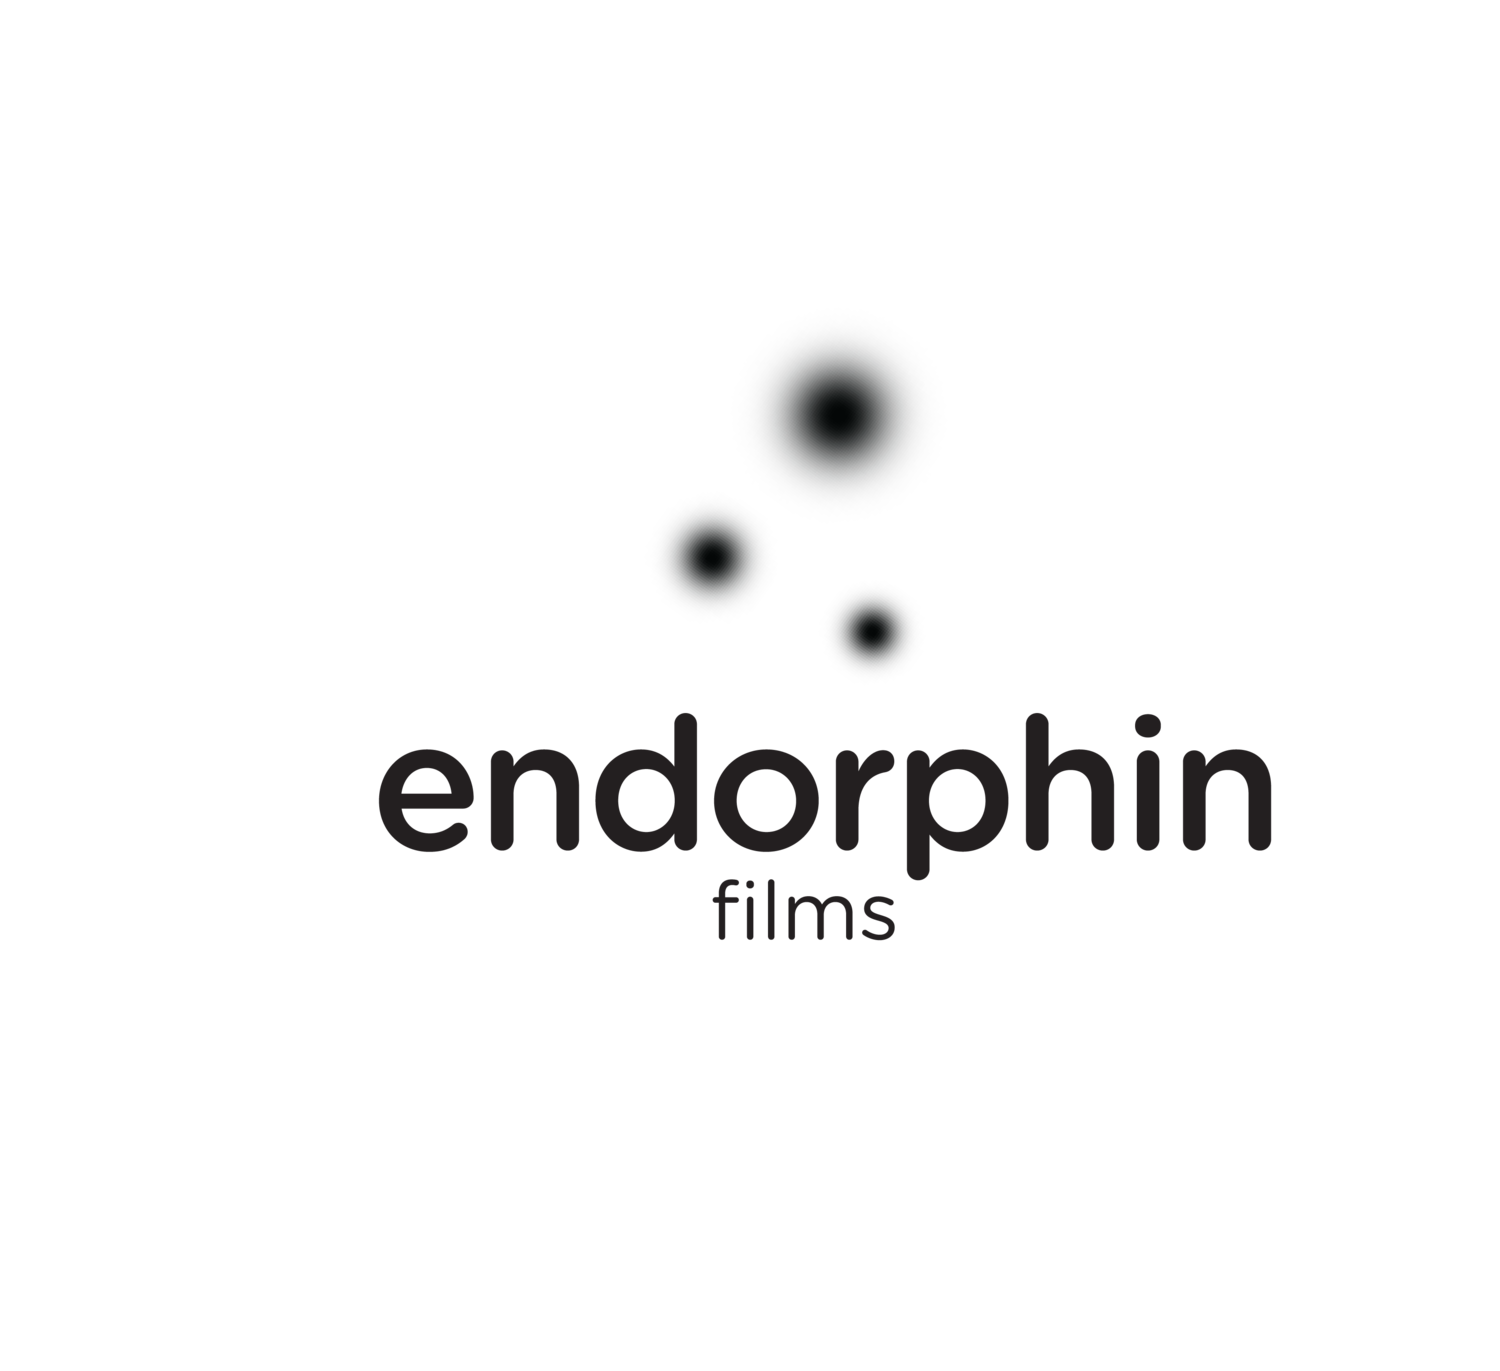 Endorphin Films